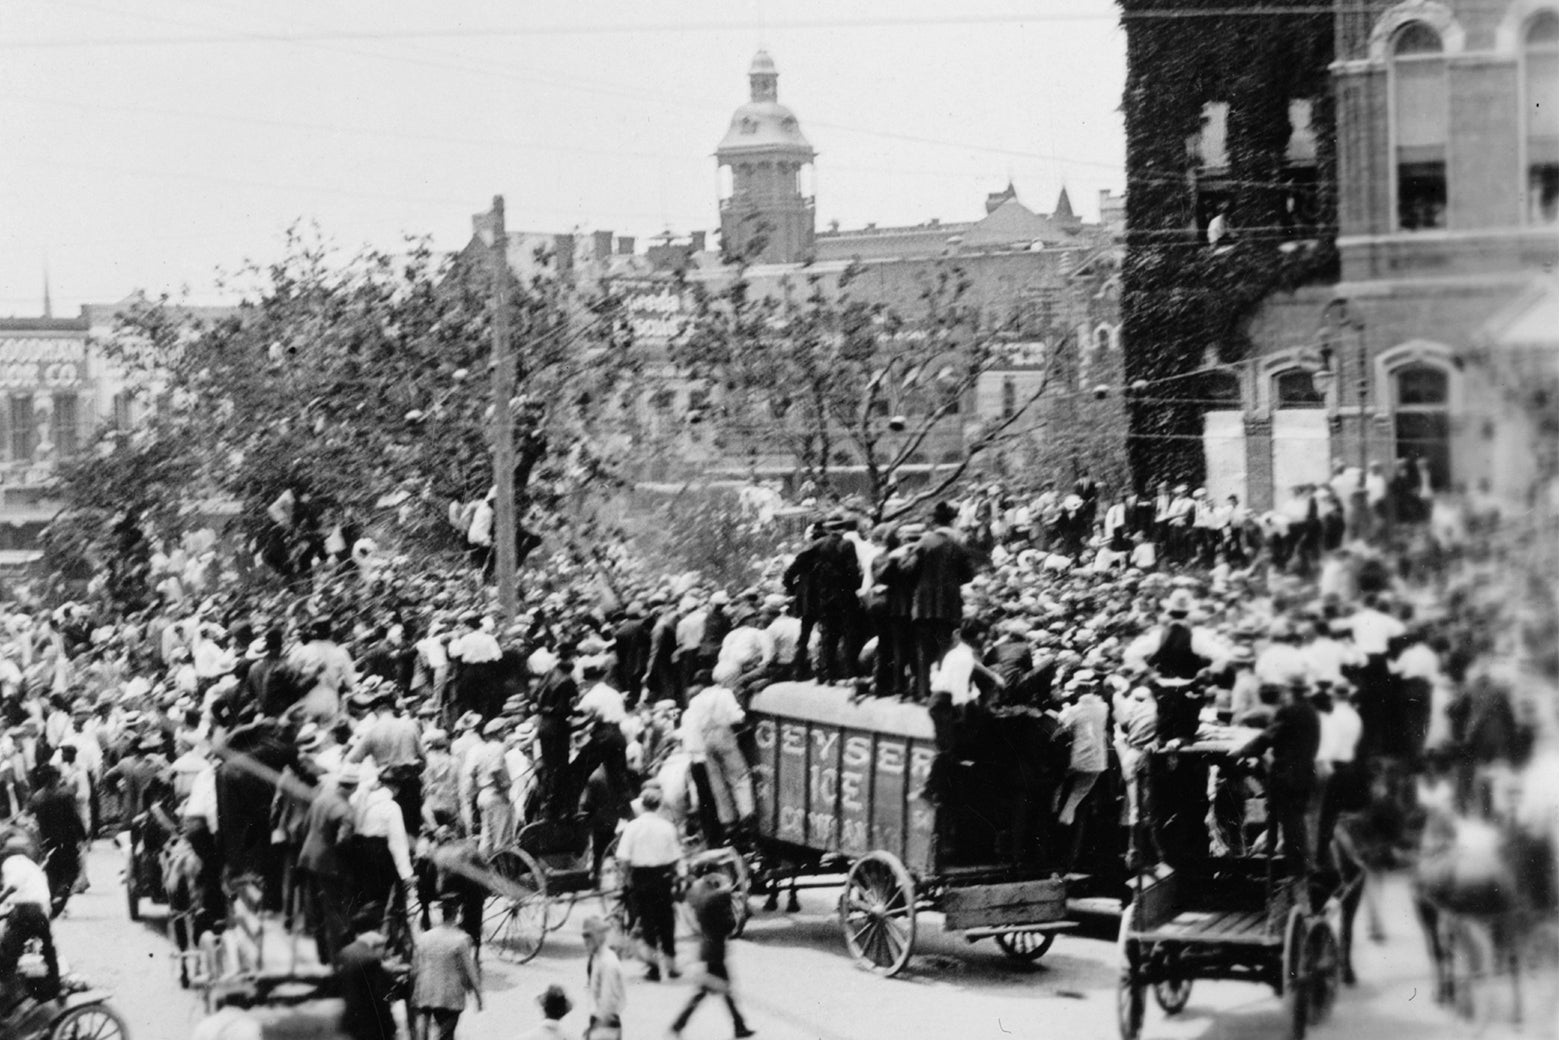 A shot of downtown Waco in 1916, as a well-dressed crowd gathers in the public square.